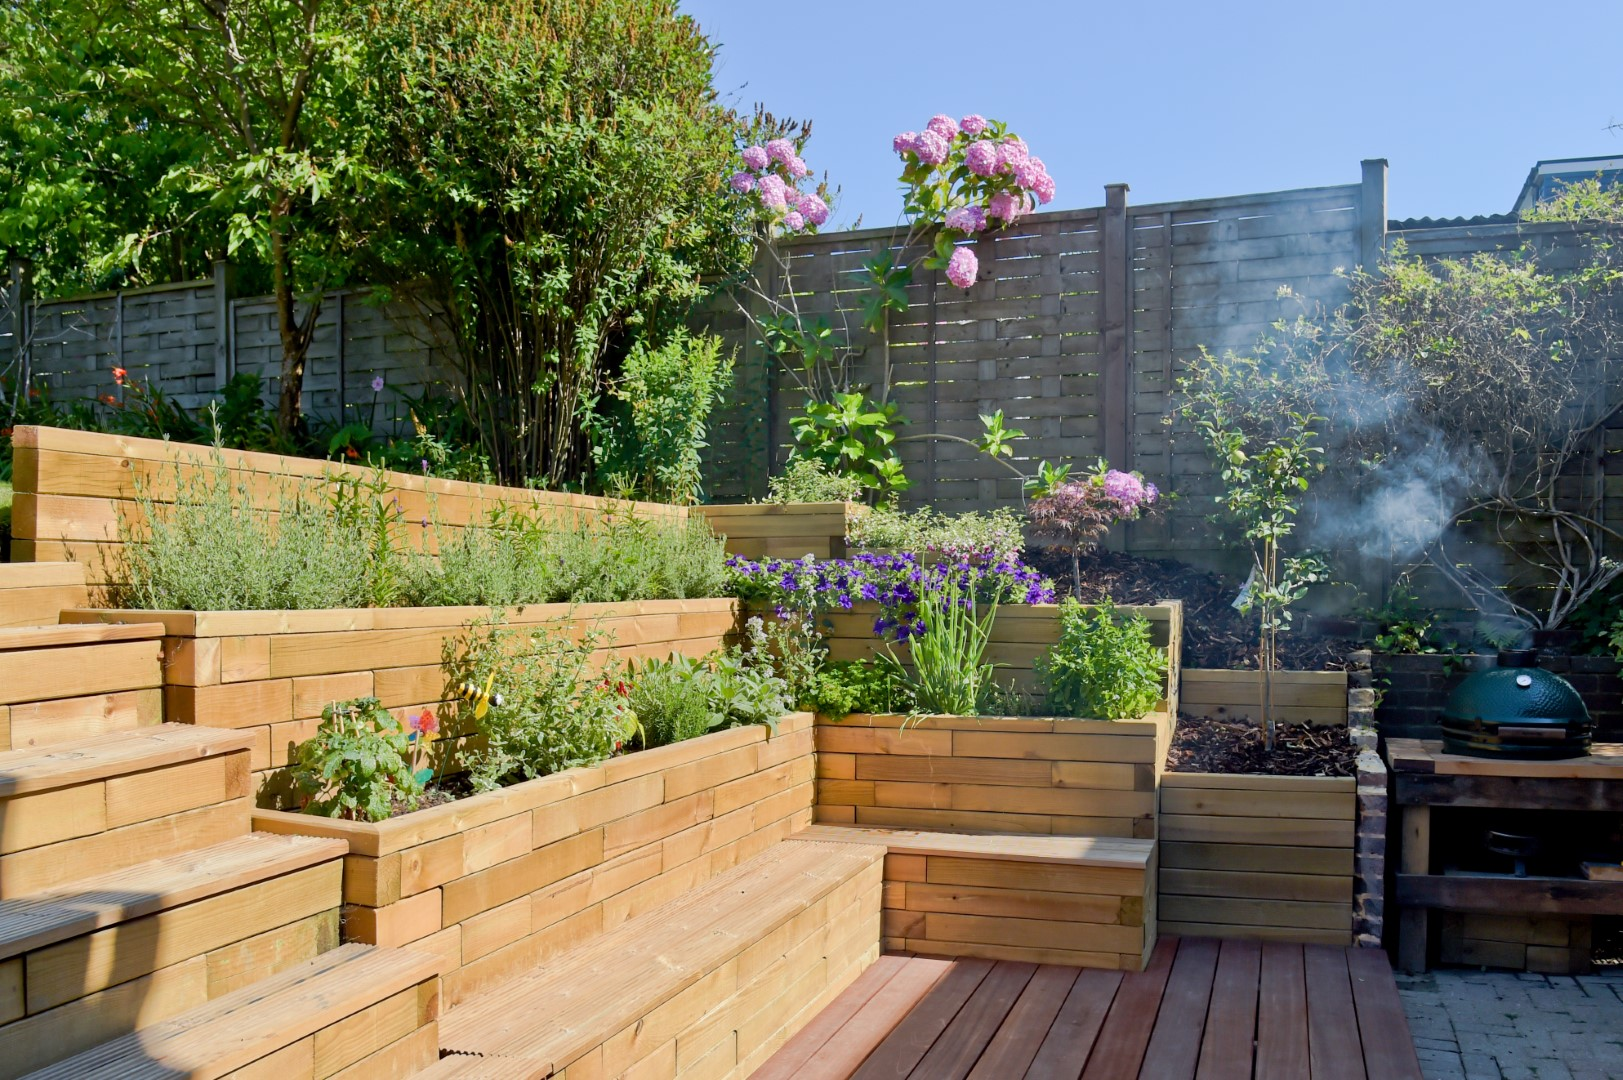 Redesign Your Garden Easily With The Woodblocx Modular System